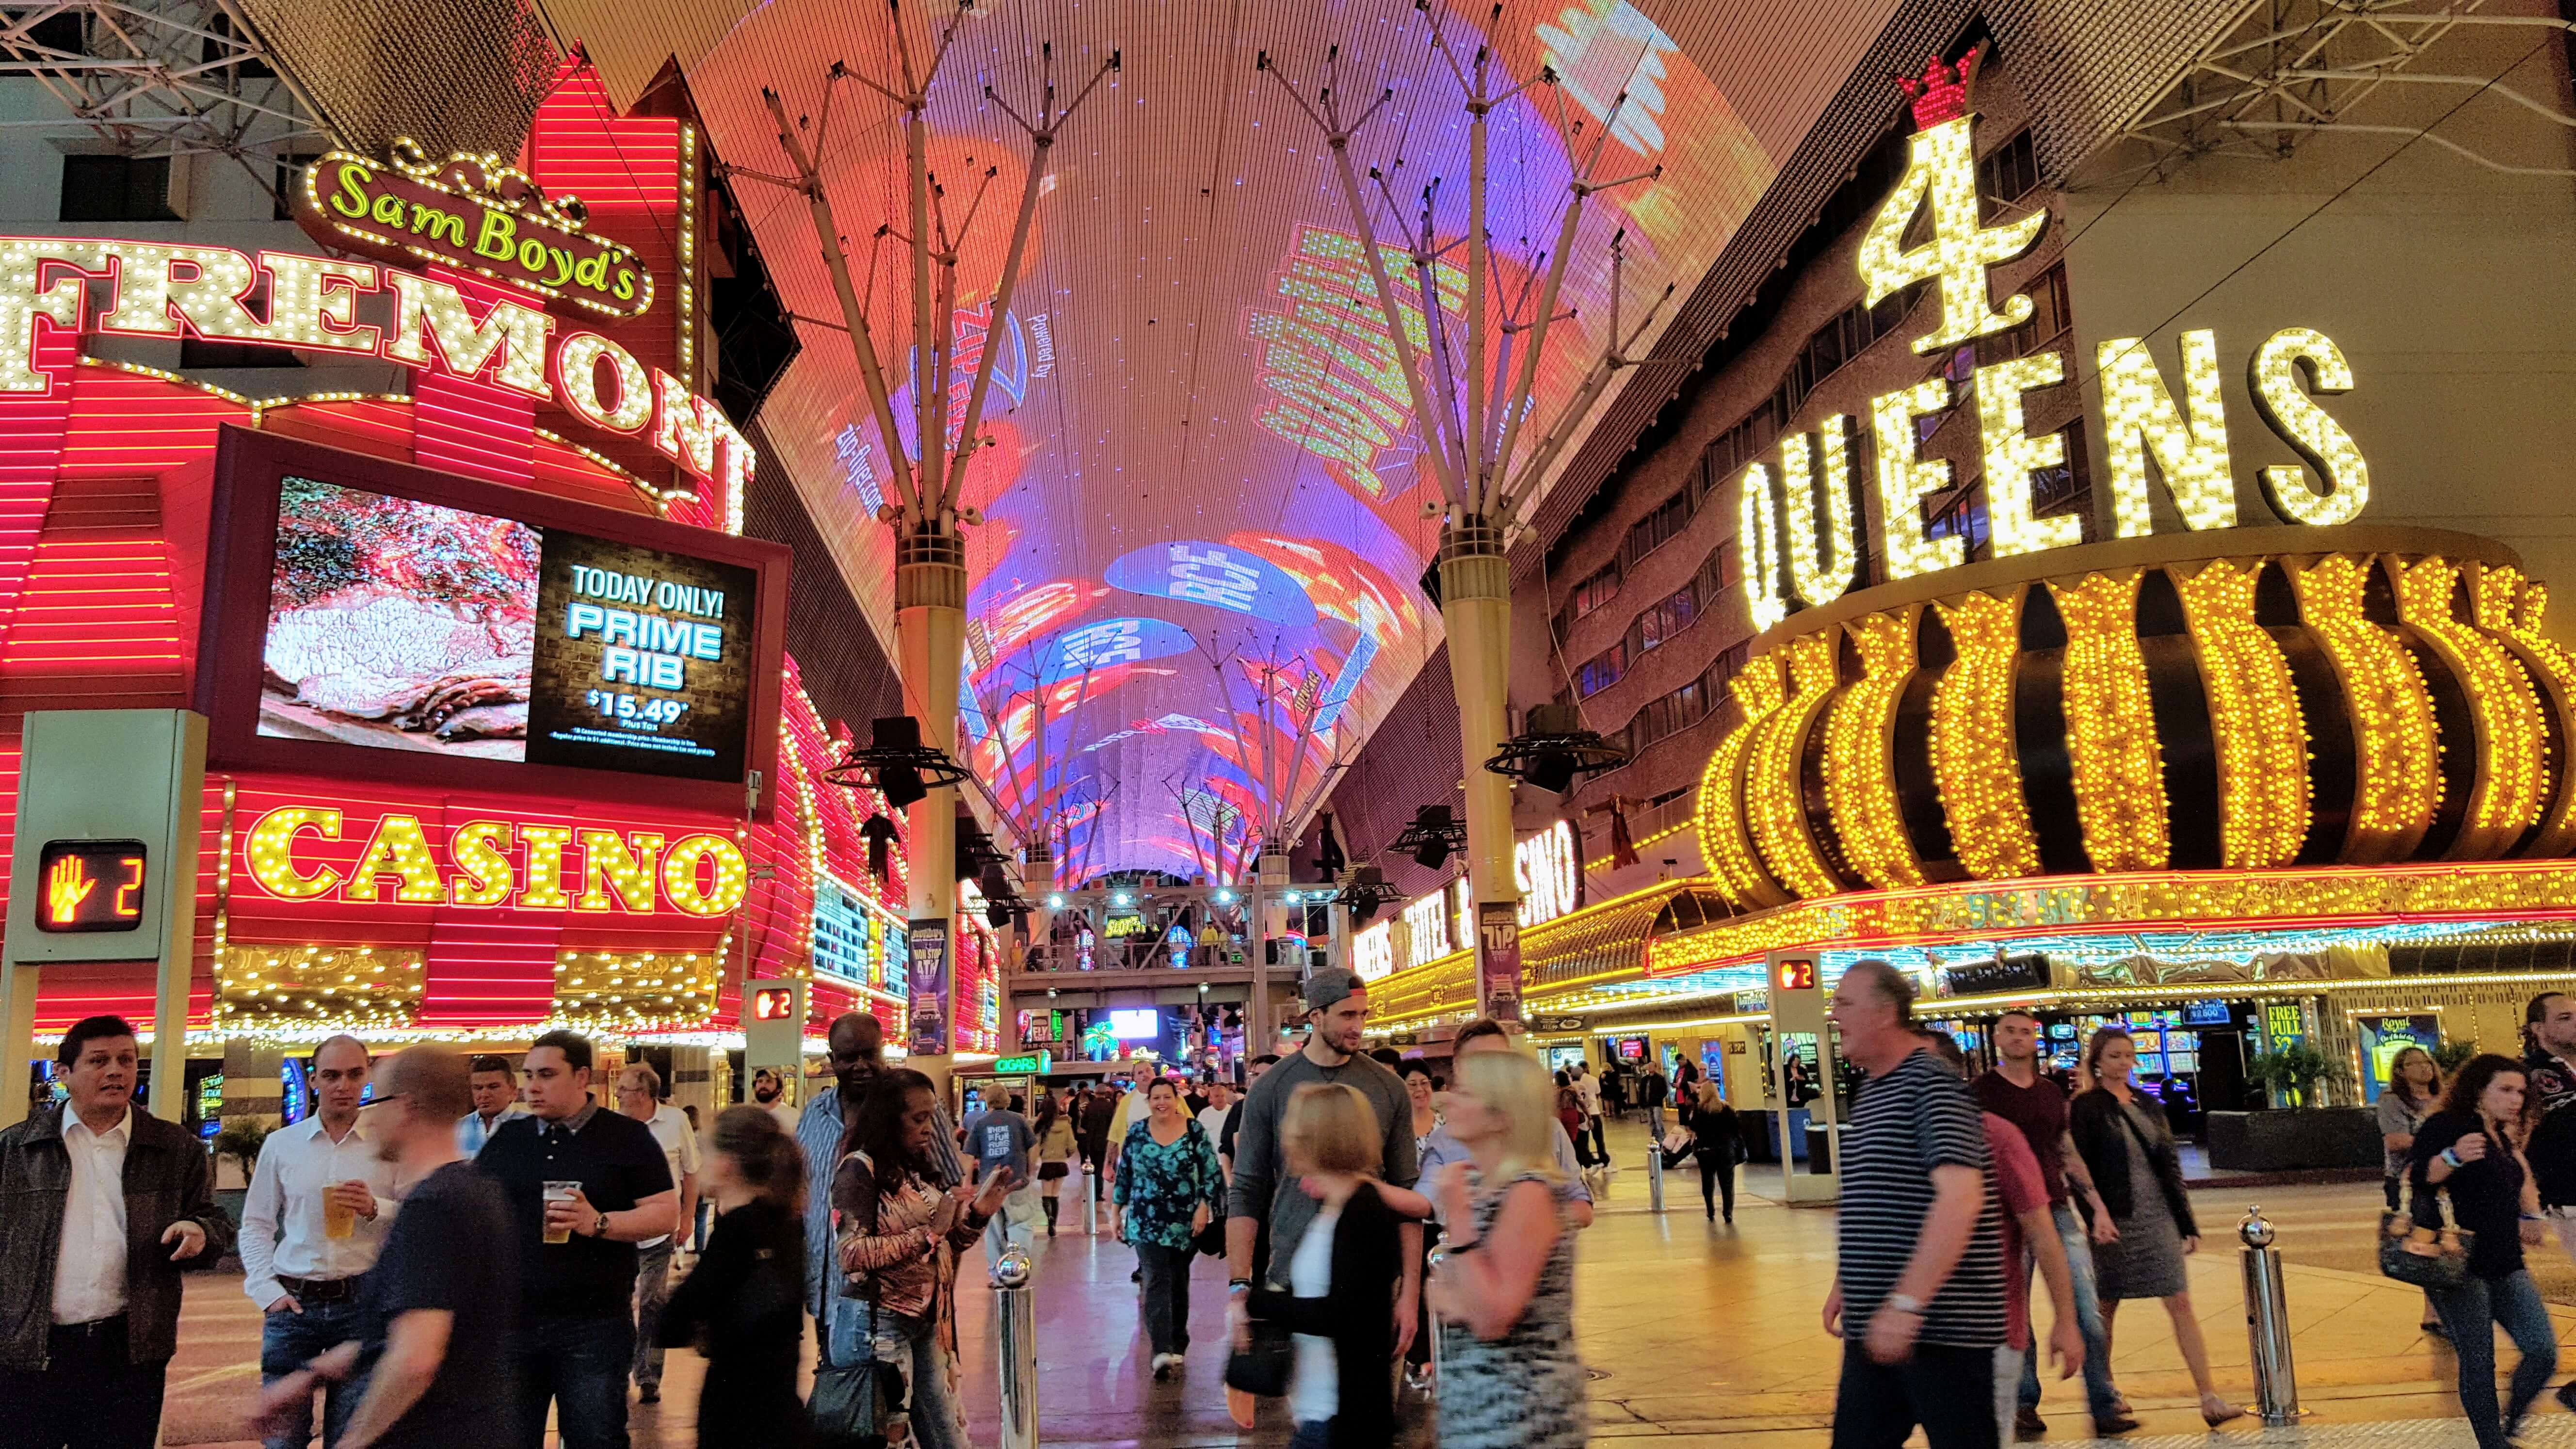 An image of Fremont Street, what we recommend as one of the best affordable things to do in Las Vegas